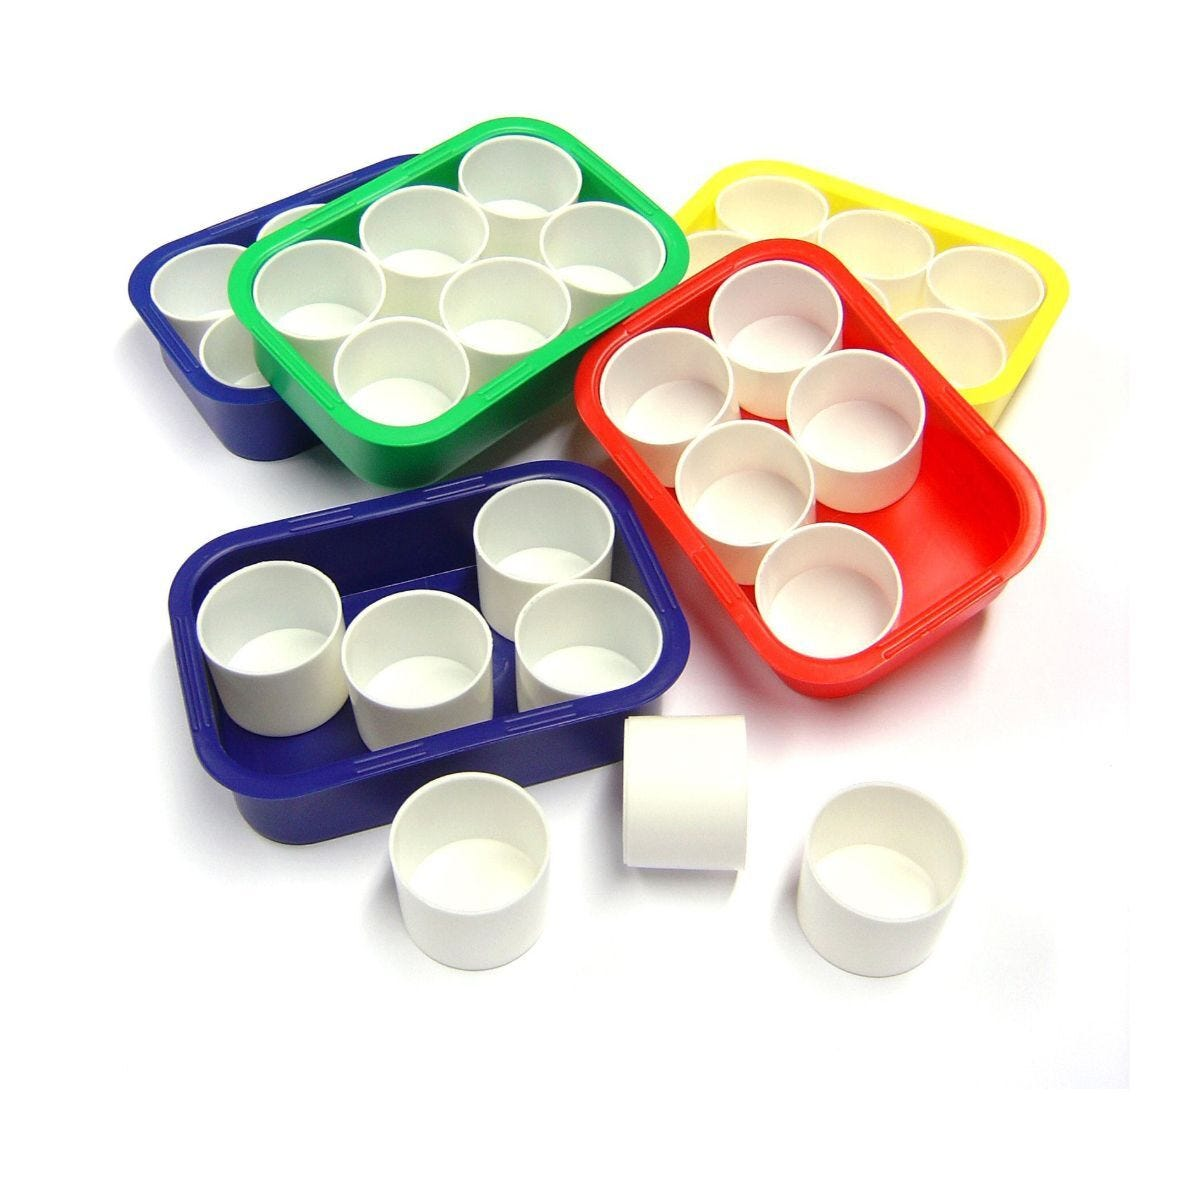 Plastic Tray and 6 Pots